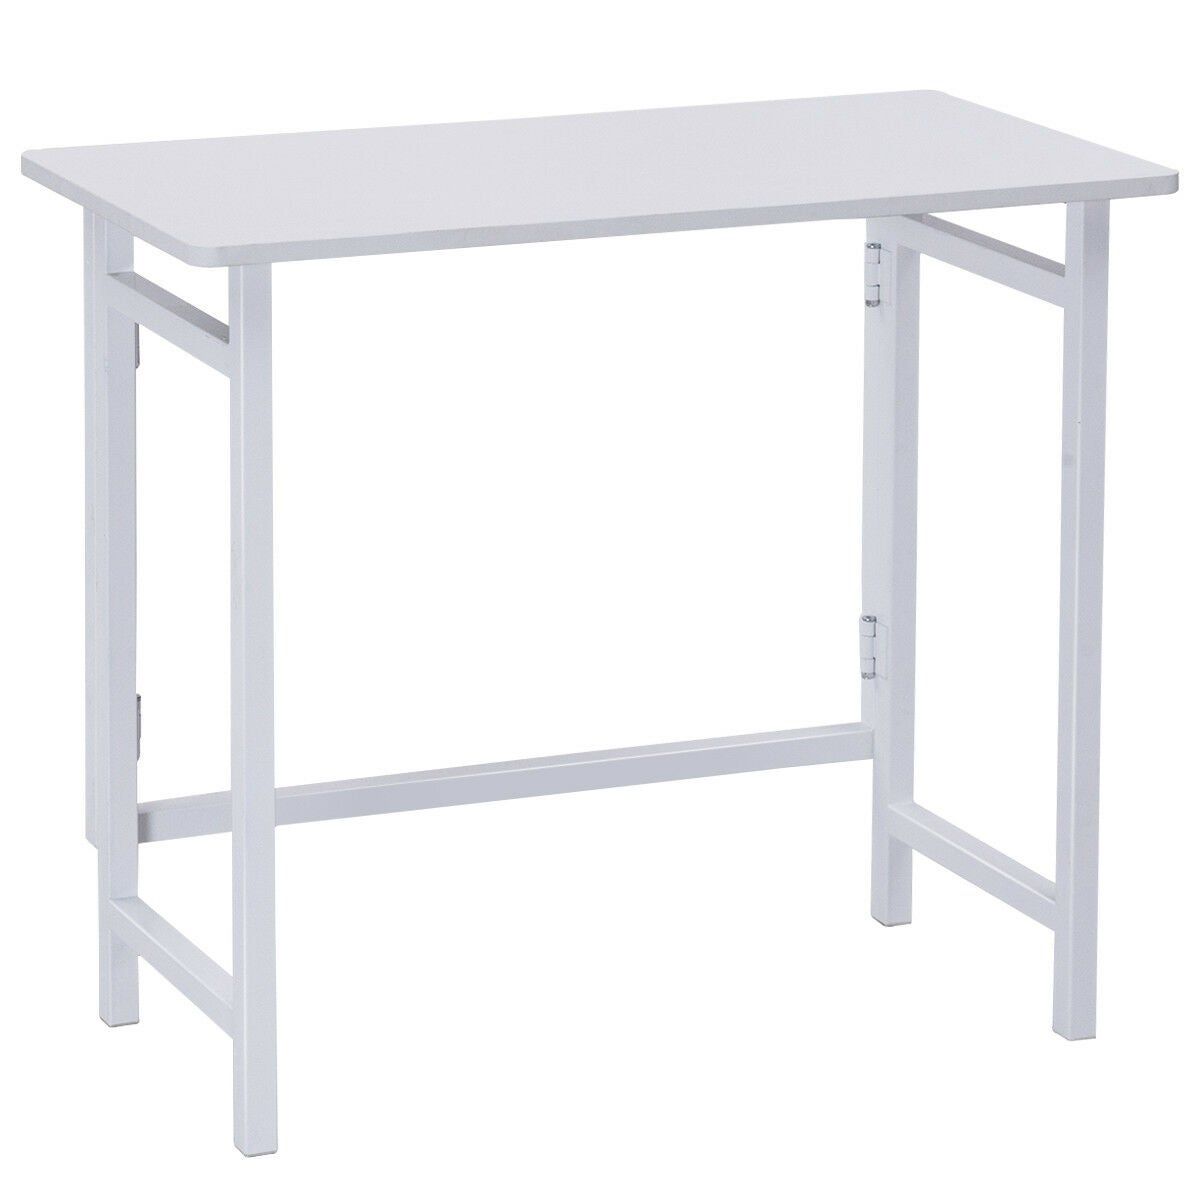 Foldable Computer Desk Folding PC Table Home Office Collapsible Workstation